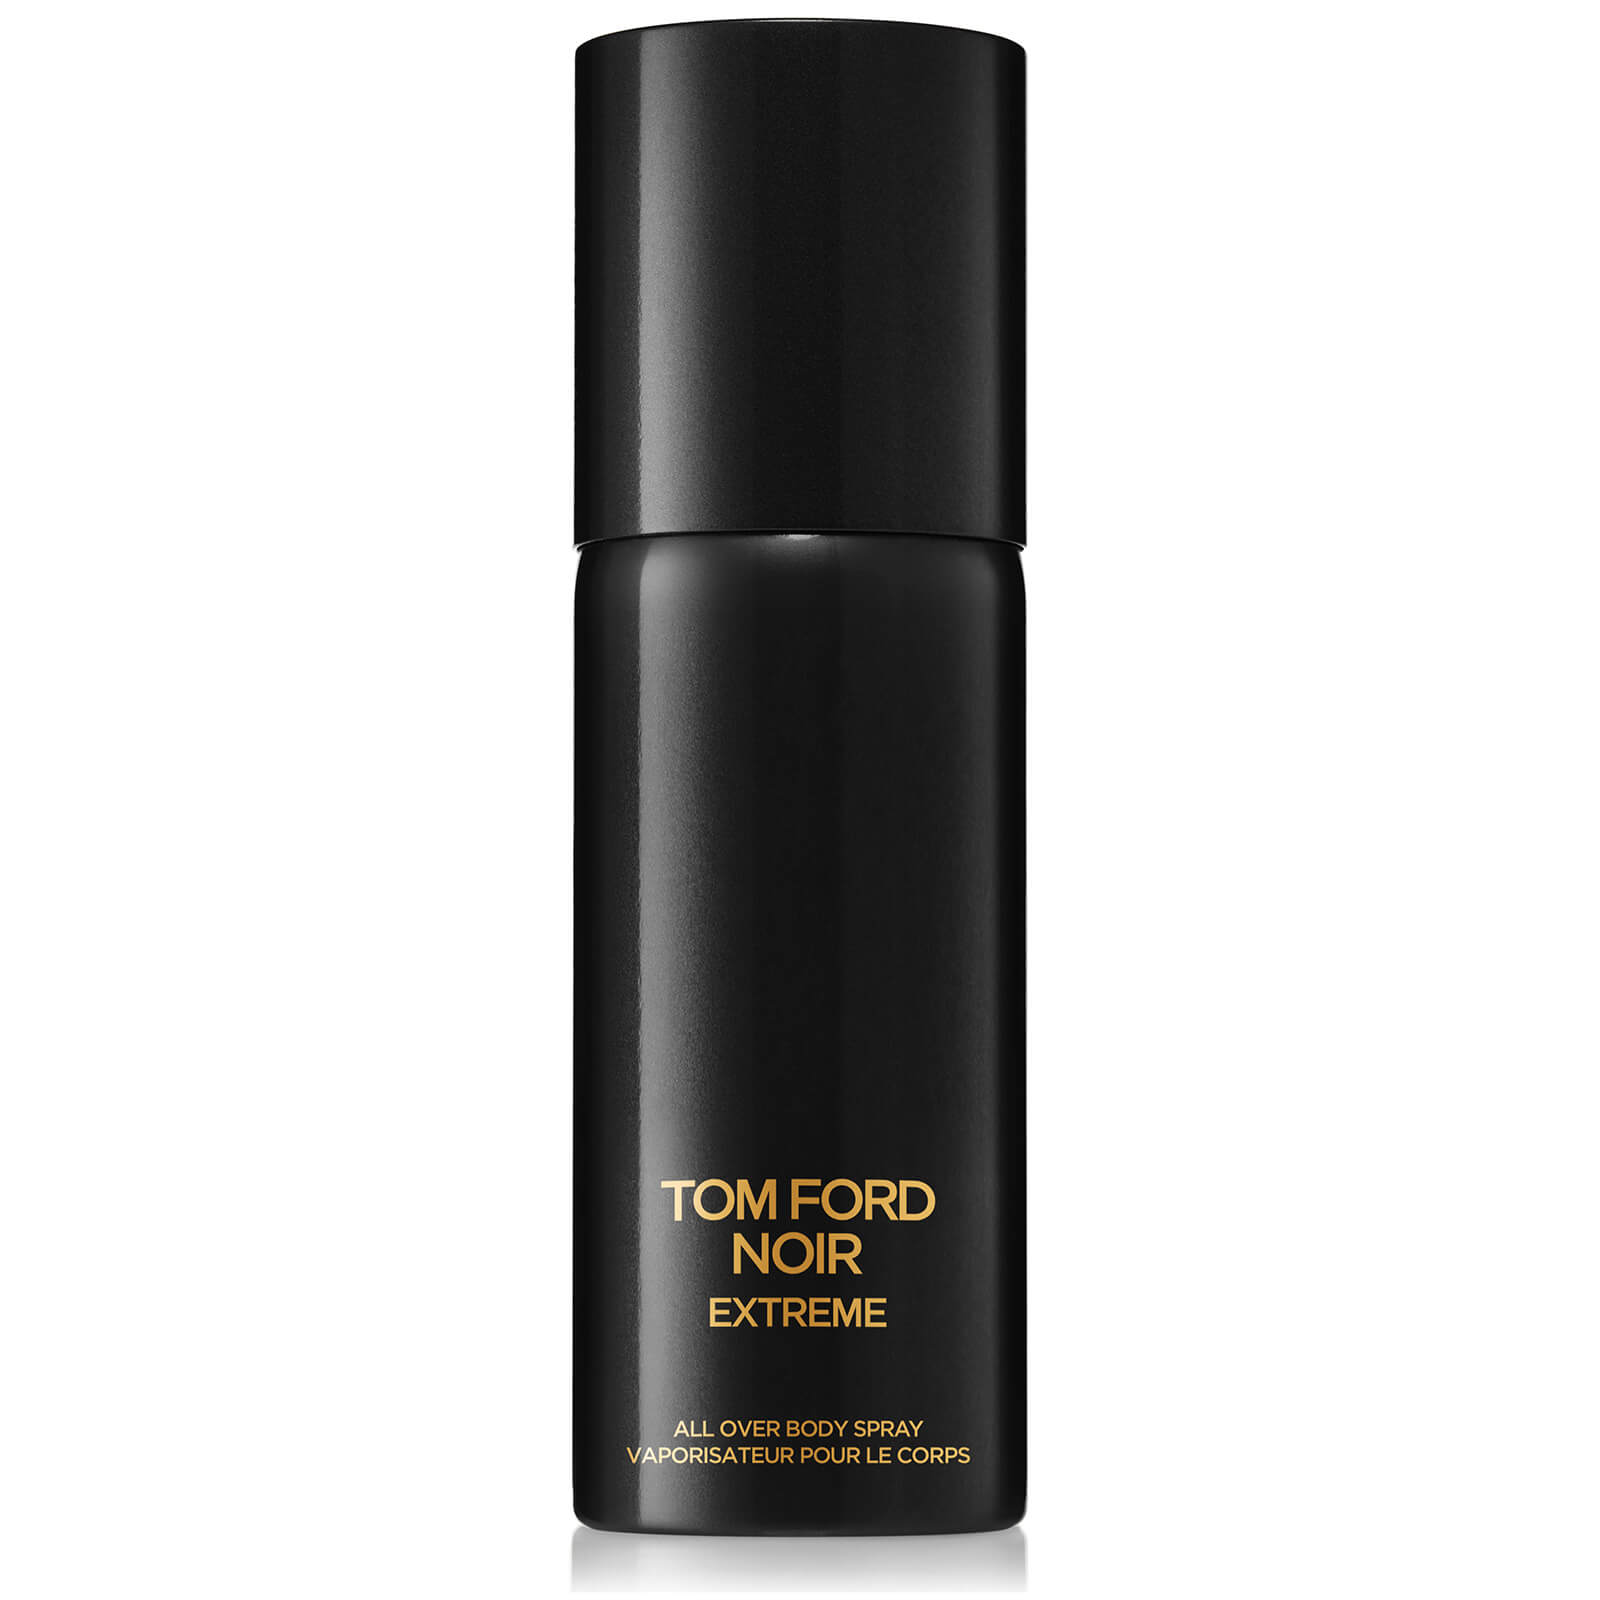 Tom Ford Noir Extreme All Over Body Spray 150ml Lookfantastic